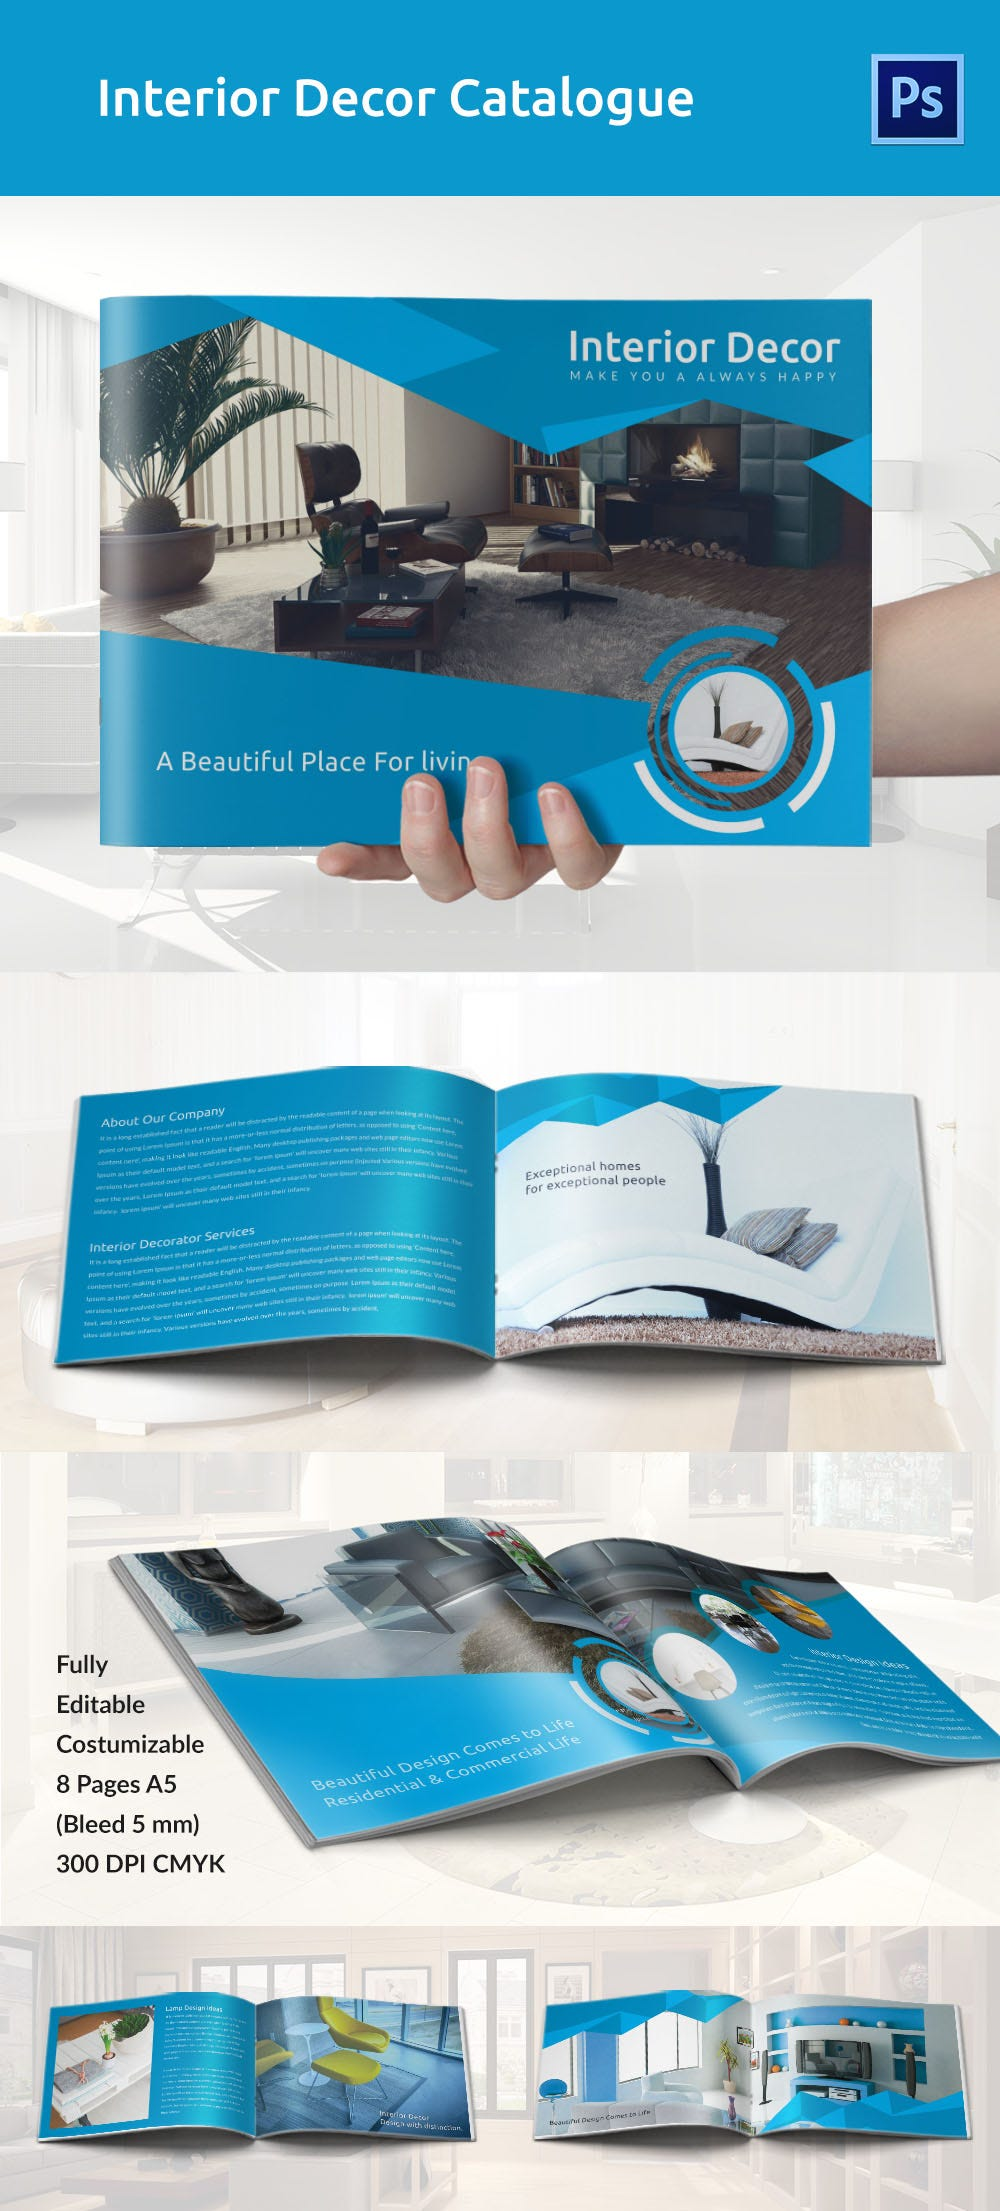 a5 brochure template - 17 interior decoration brochure free word psd pdf